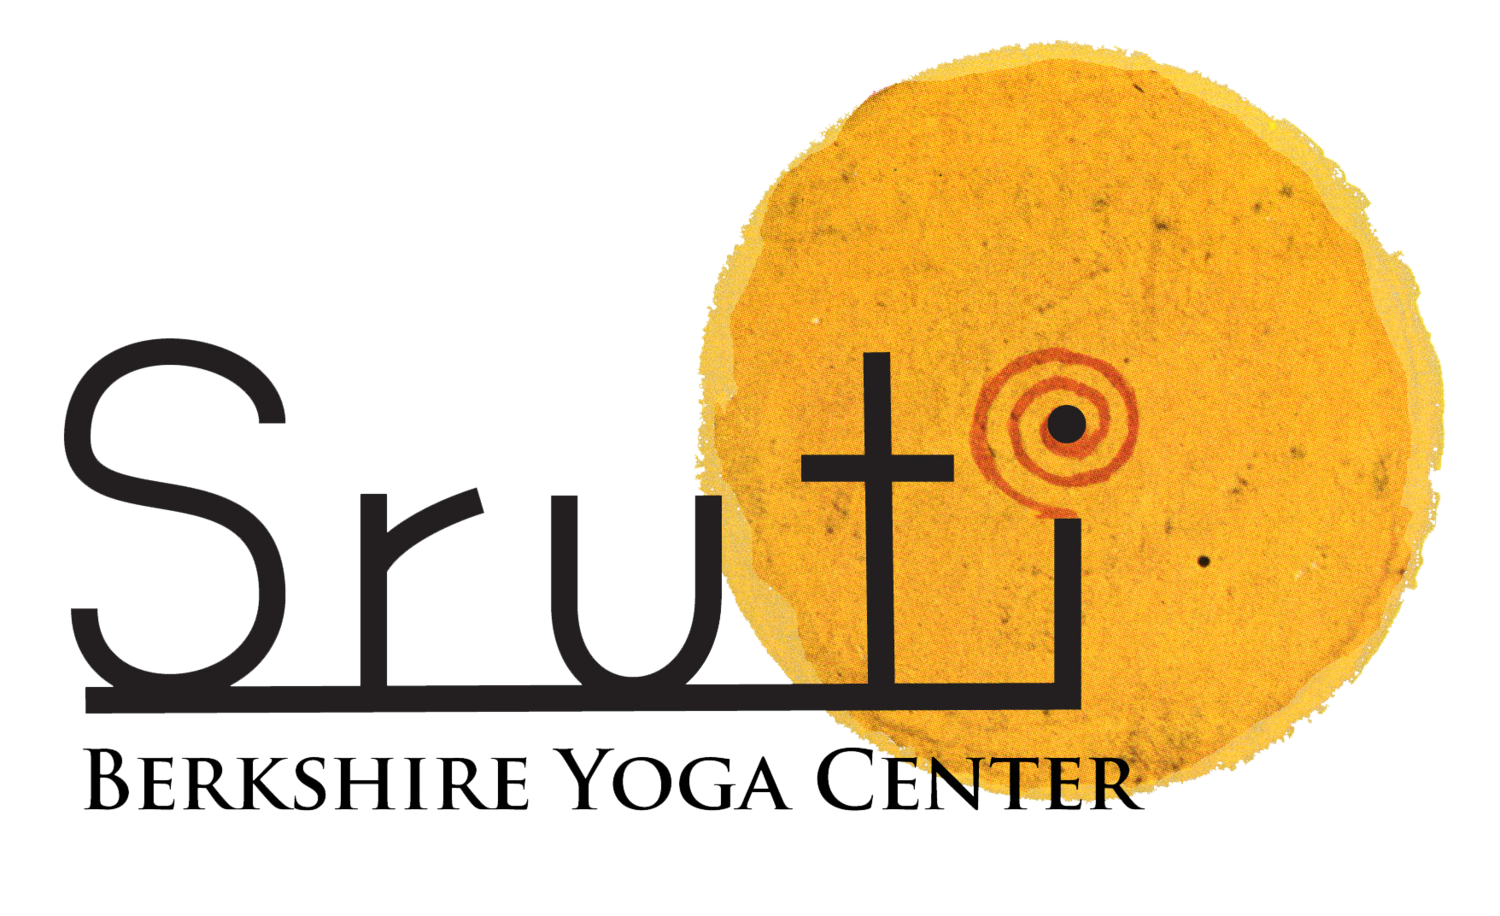 SRUTI Yoga Center